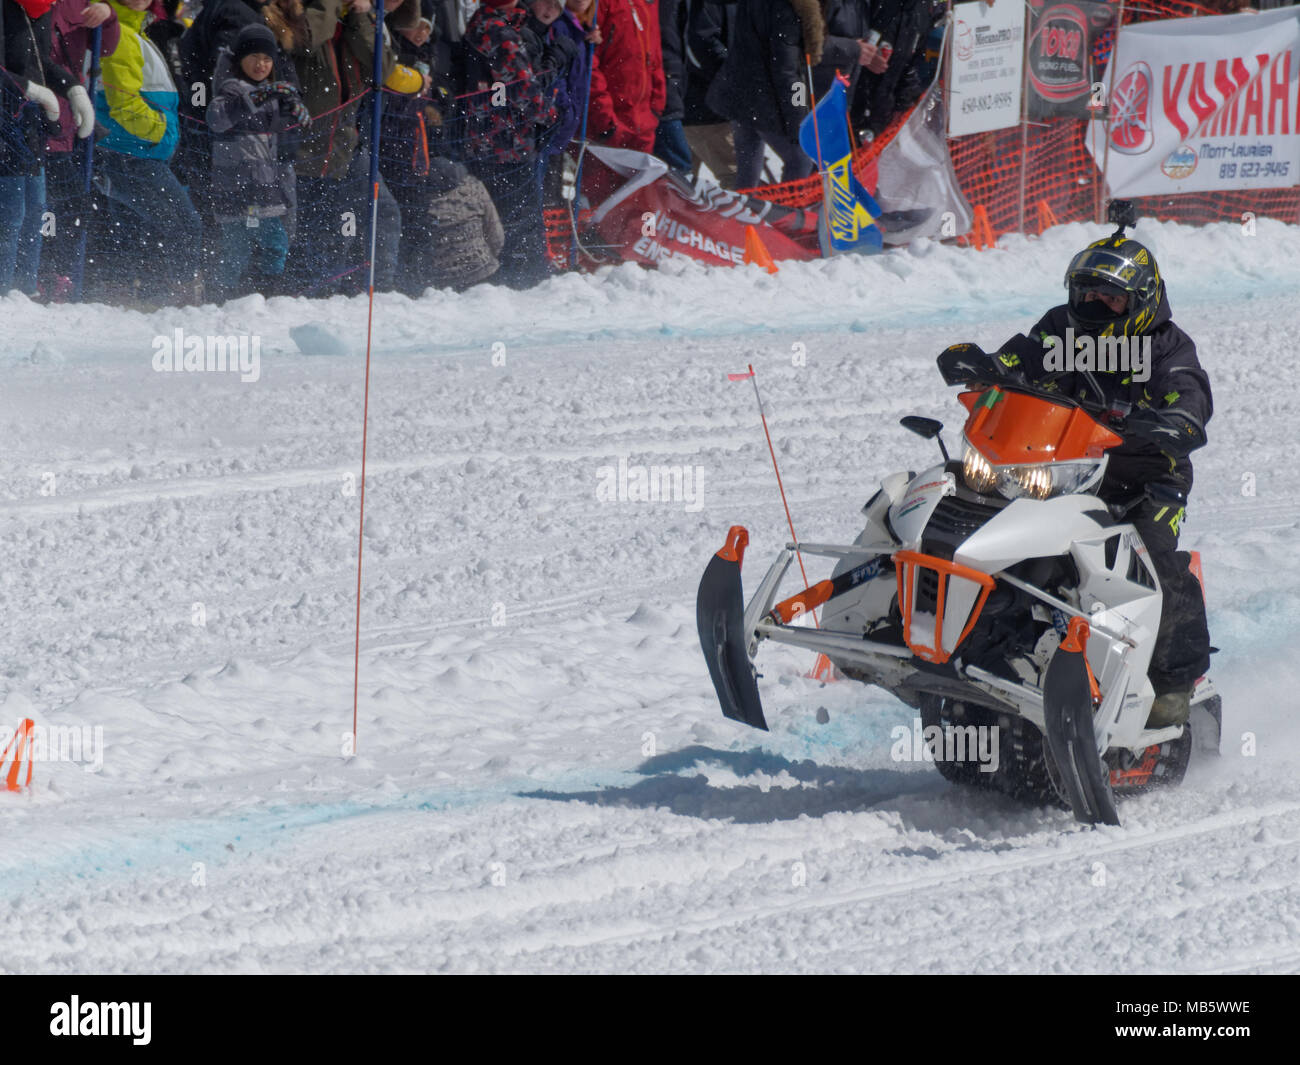 quebec, canada 4/7/2018 snowmobile uphill drag race held on the